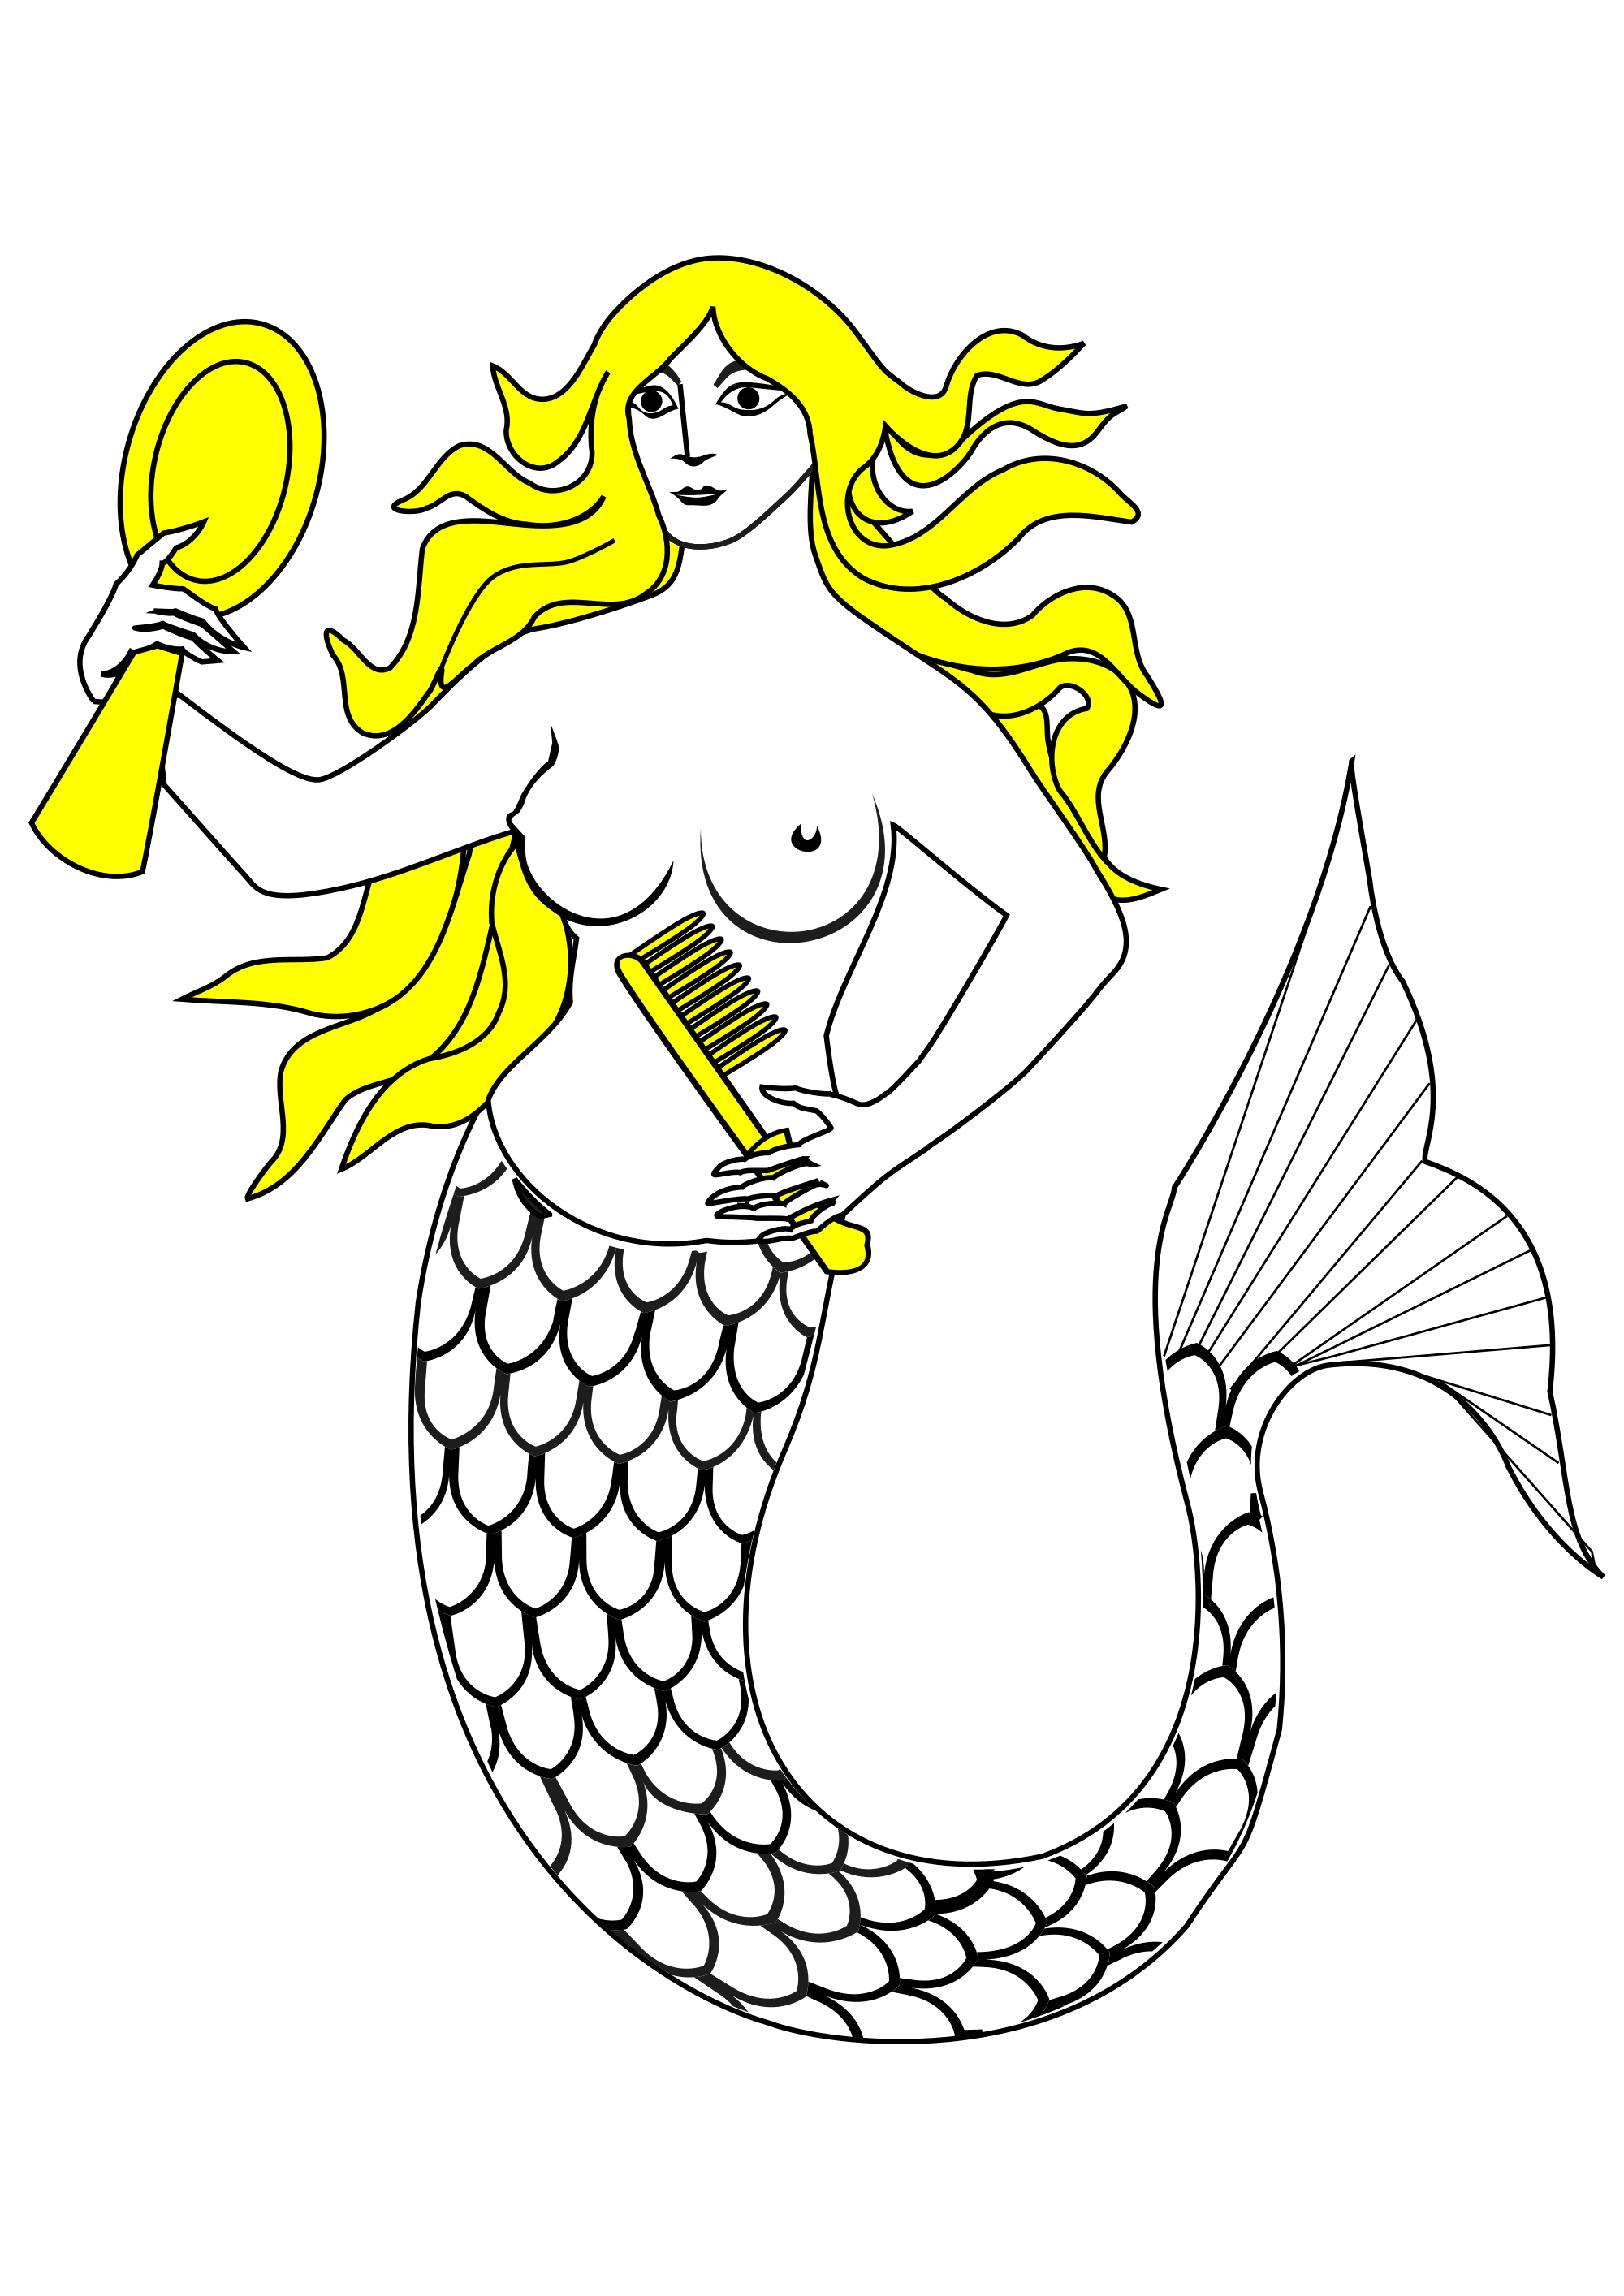 File element wikimedia commons. Svg mermaid clipart black and white stock